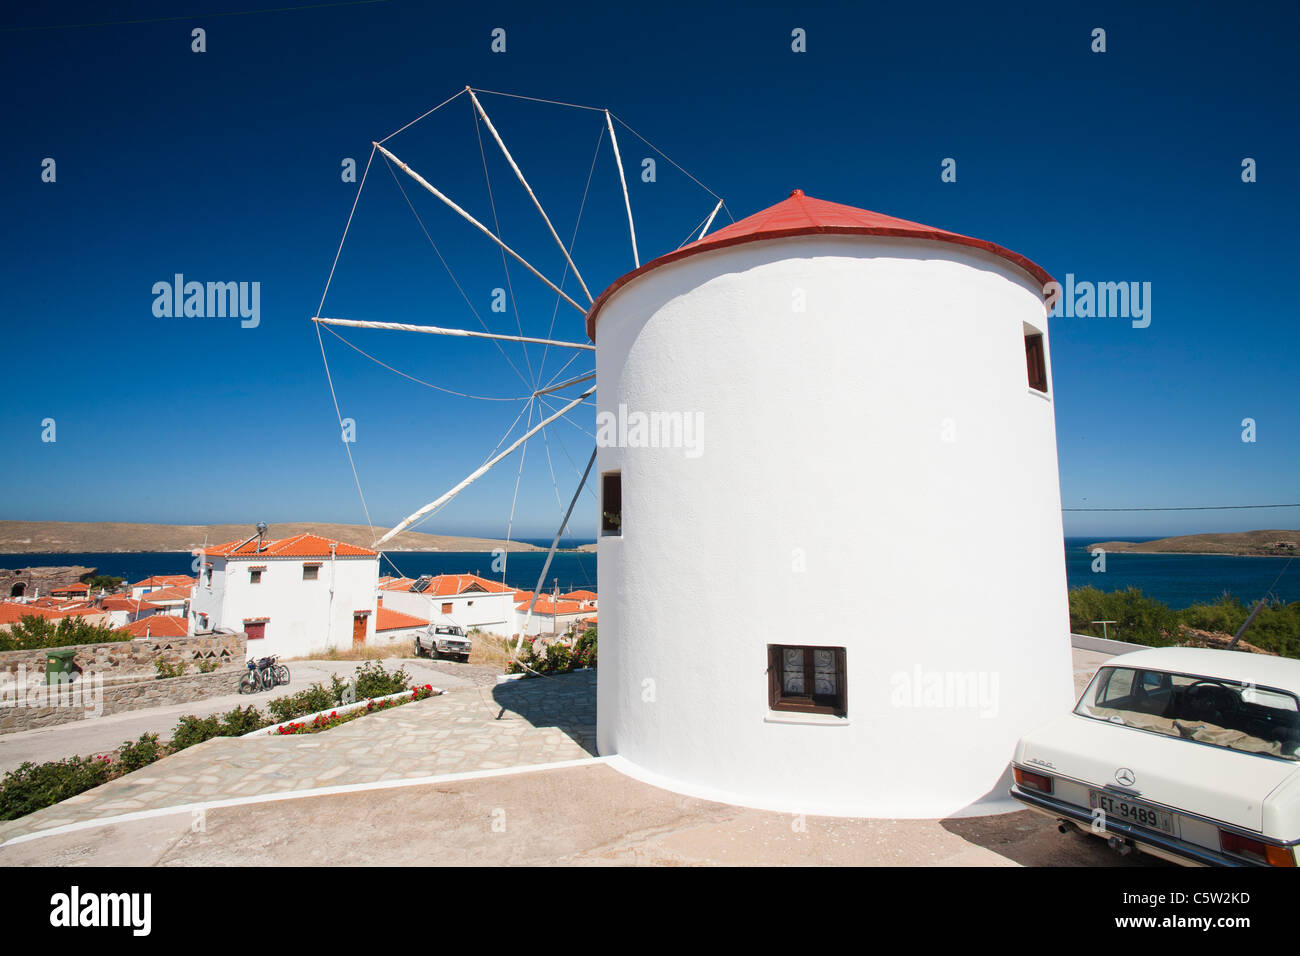 A traditional cloth sailed windmill converted into a house in Sigri, on Lesbos, Greece. - Stock Image